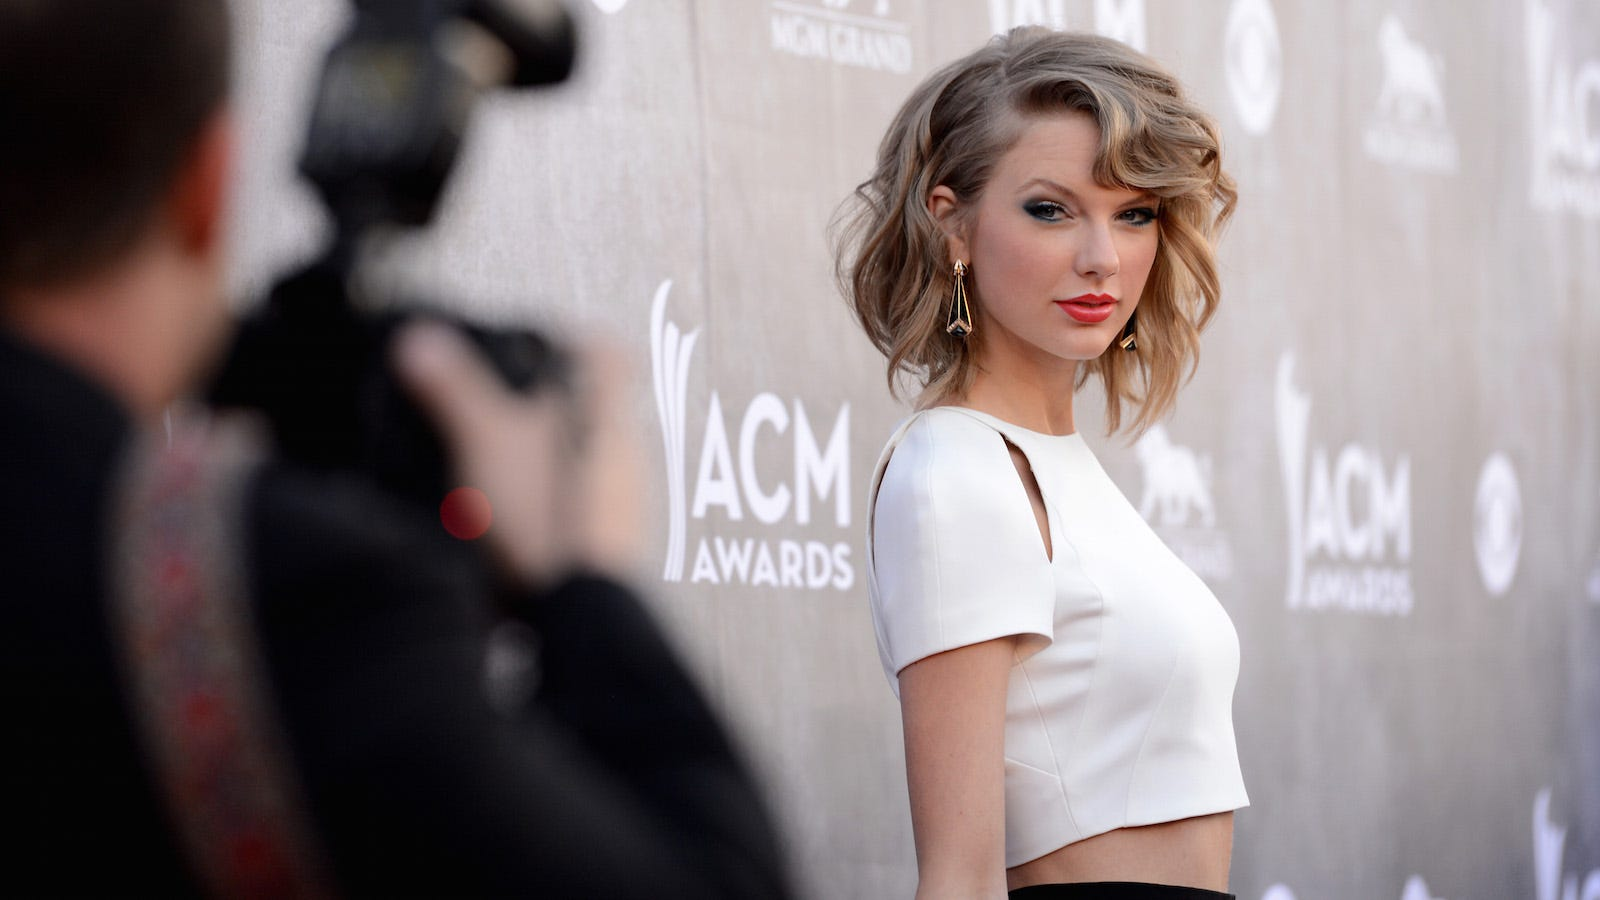 xs8rexh4dbp8s8tx3nfv - Judge Dismisses Taylor Swift Lawsuit While Pouring the Burn Sauce